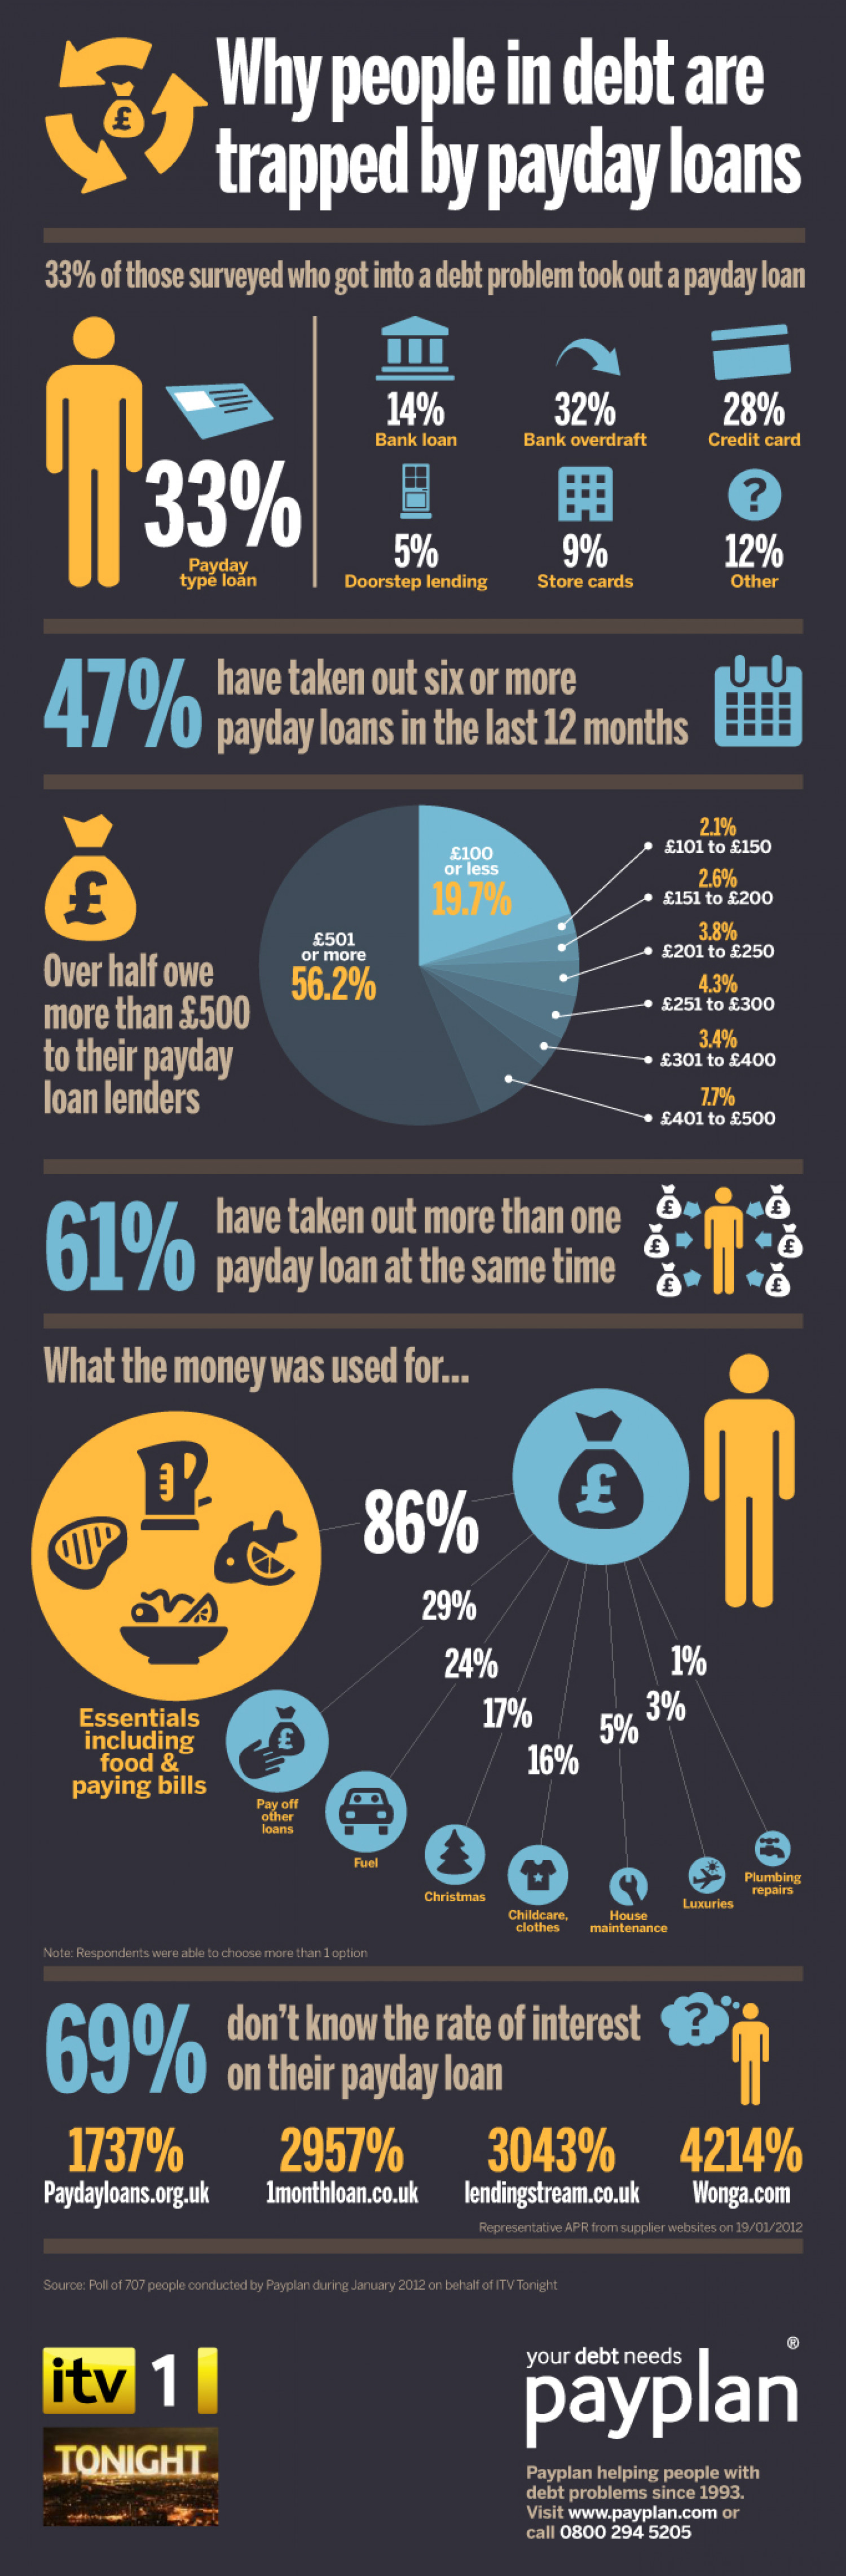 How People In Debt Are Trapped By Payday Loans Infographic